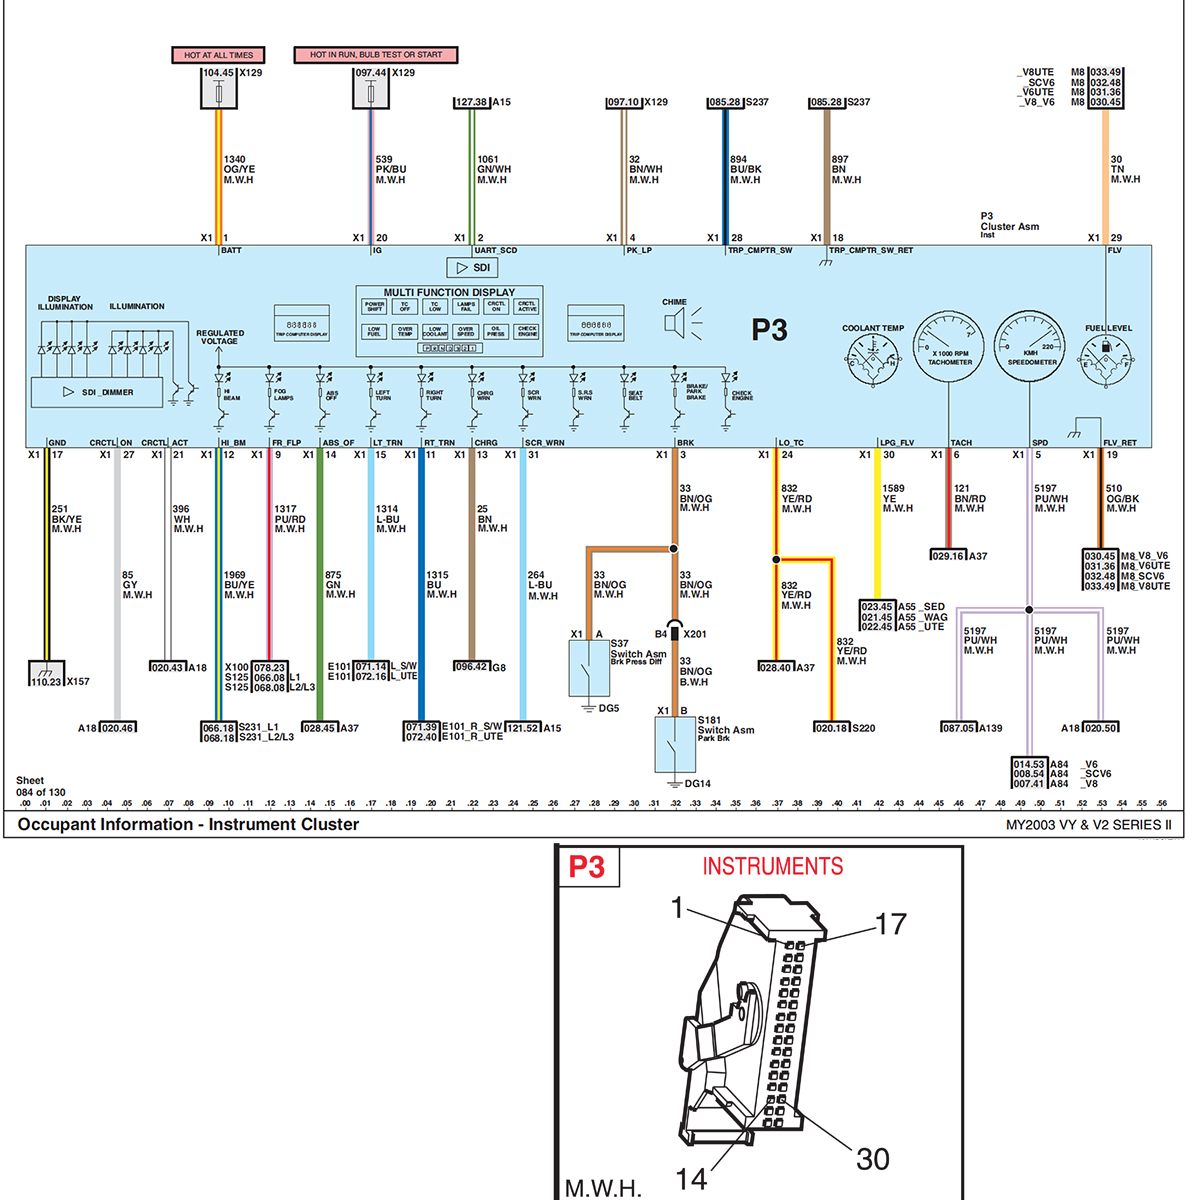 vy instrument cluster pinout wiring diagram just commodores  wiring diagram for instrument panel #4